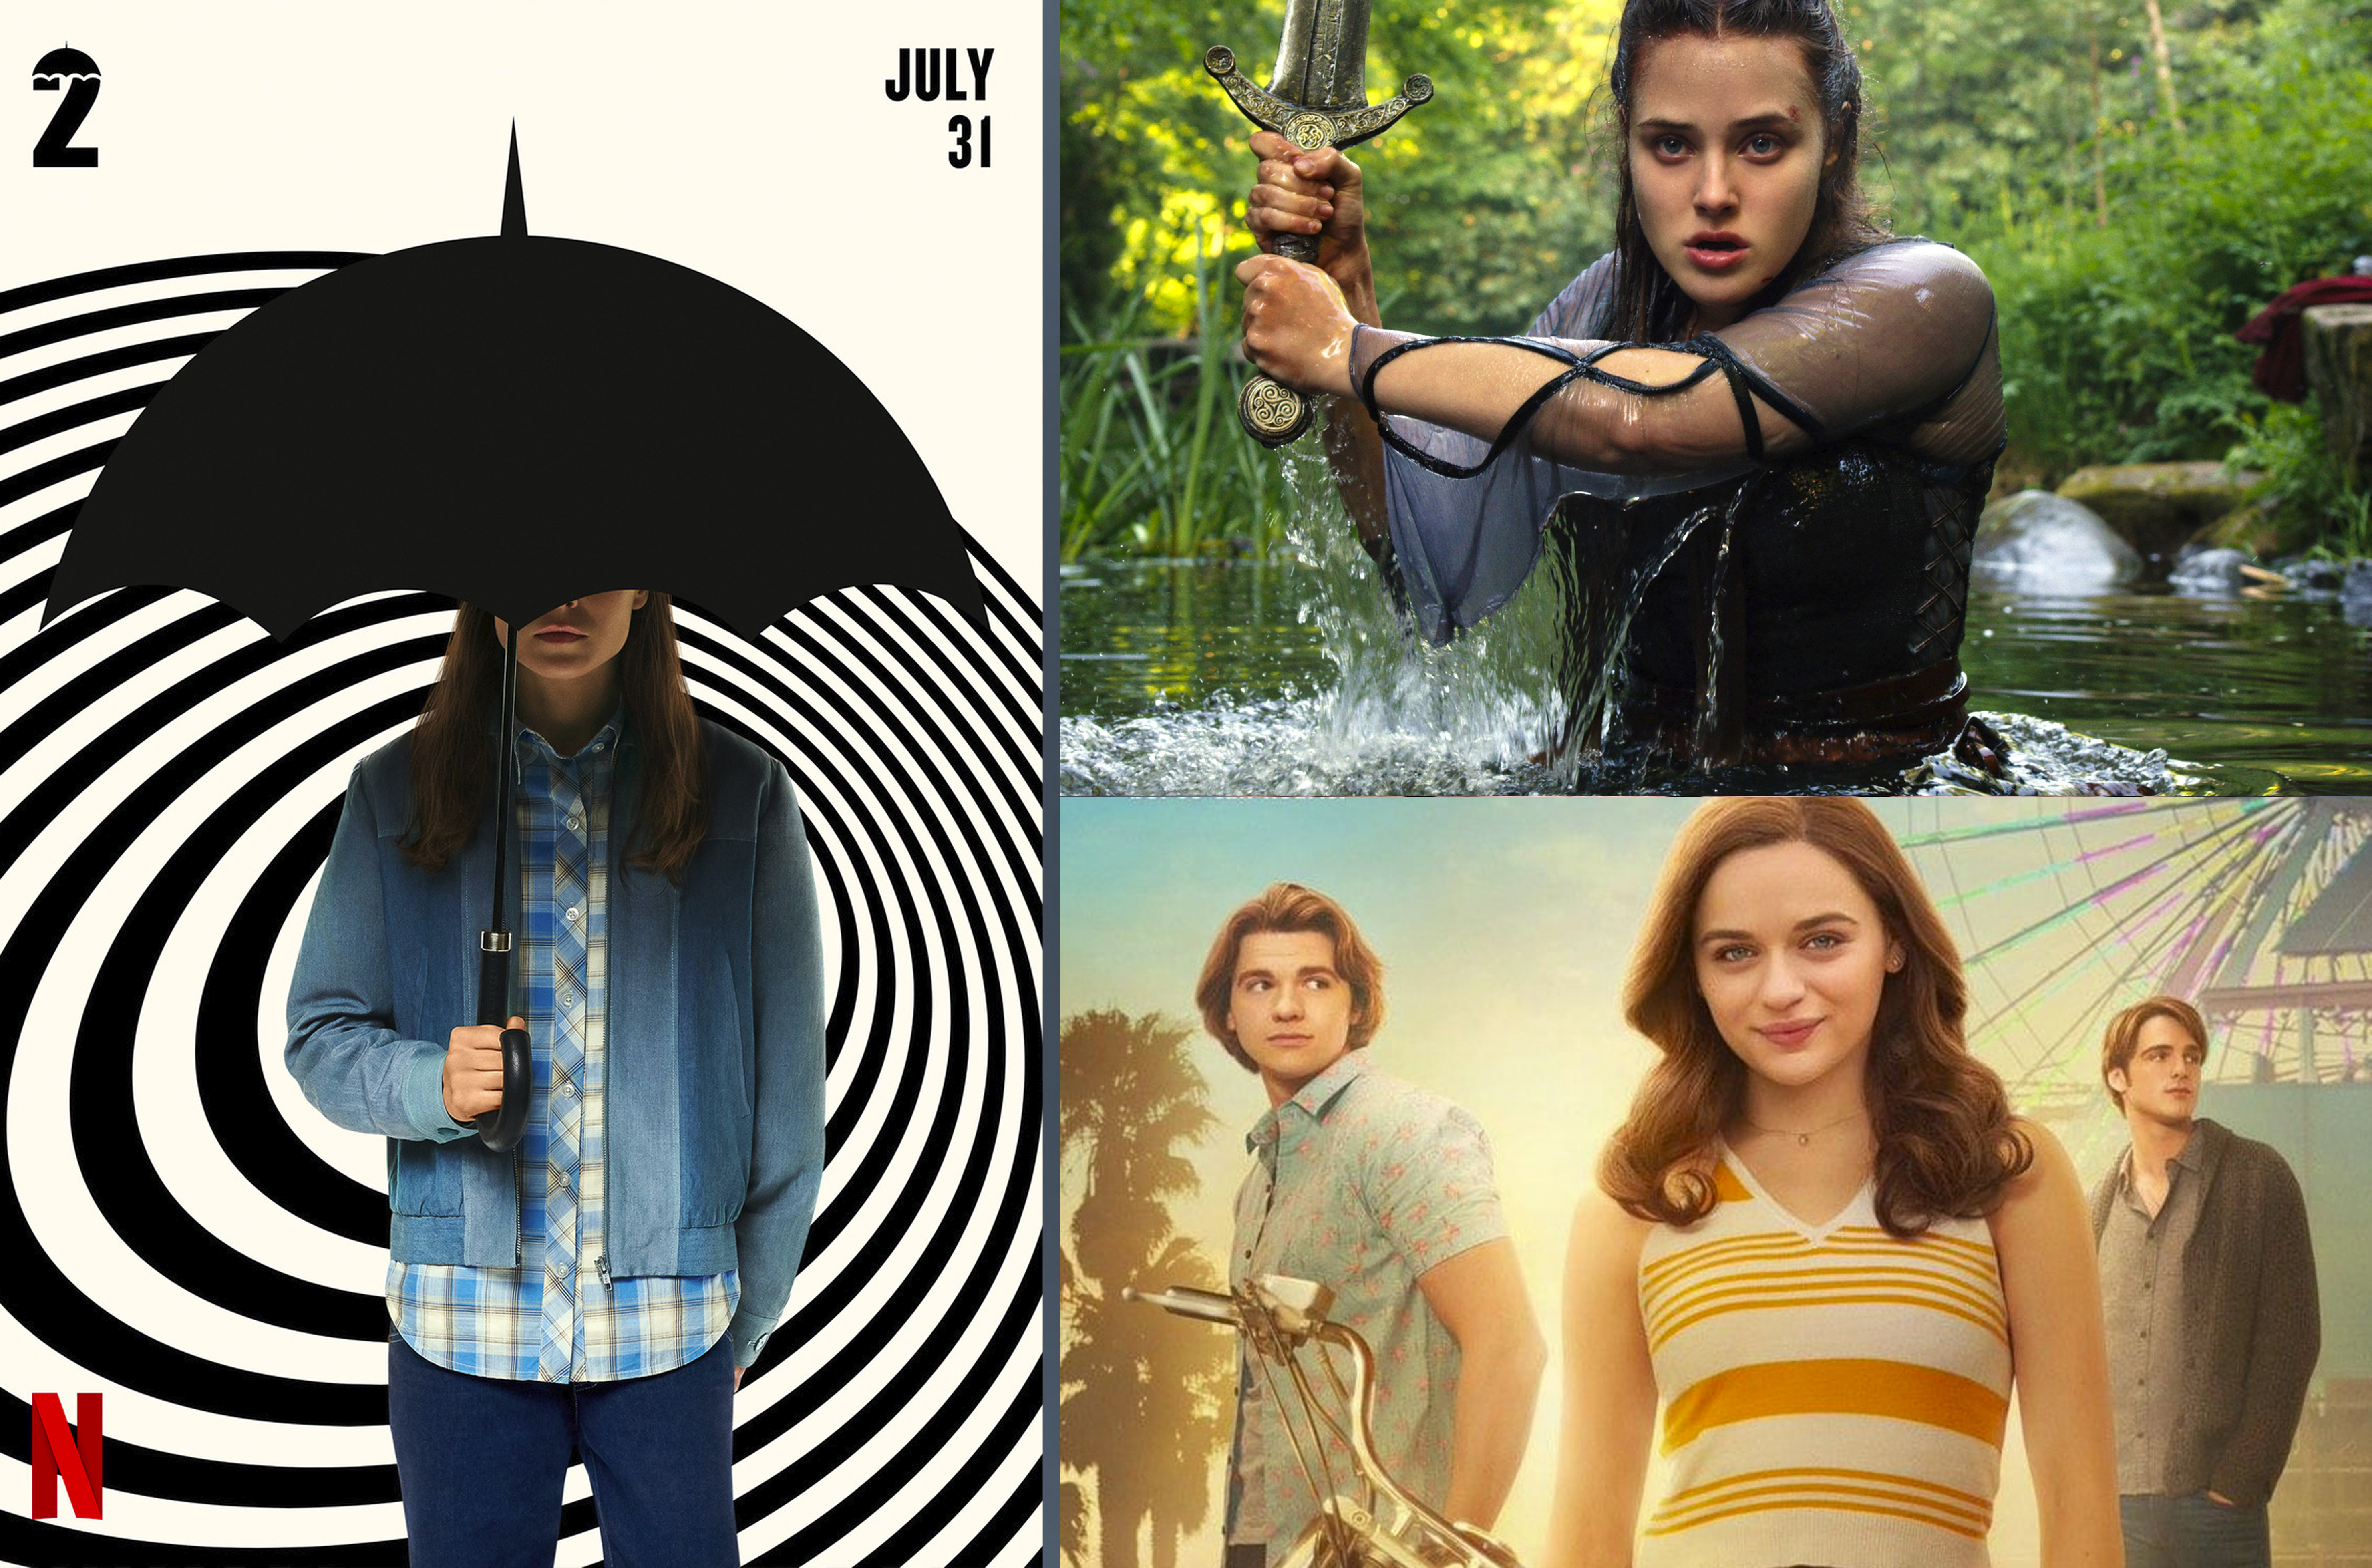 HERE'S THE COMPLETE LIST OF WHAT'S COMING TO NETFLIX THIS JULY